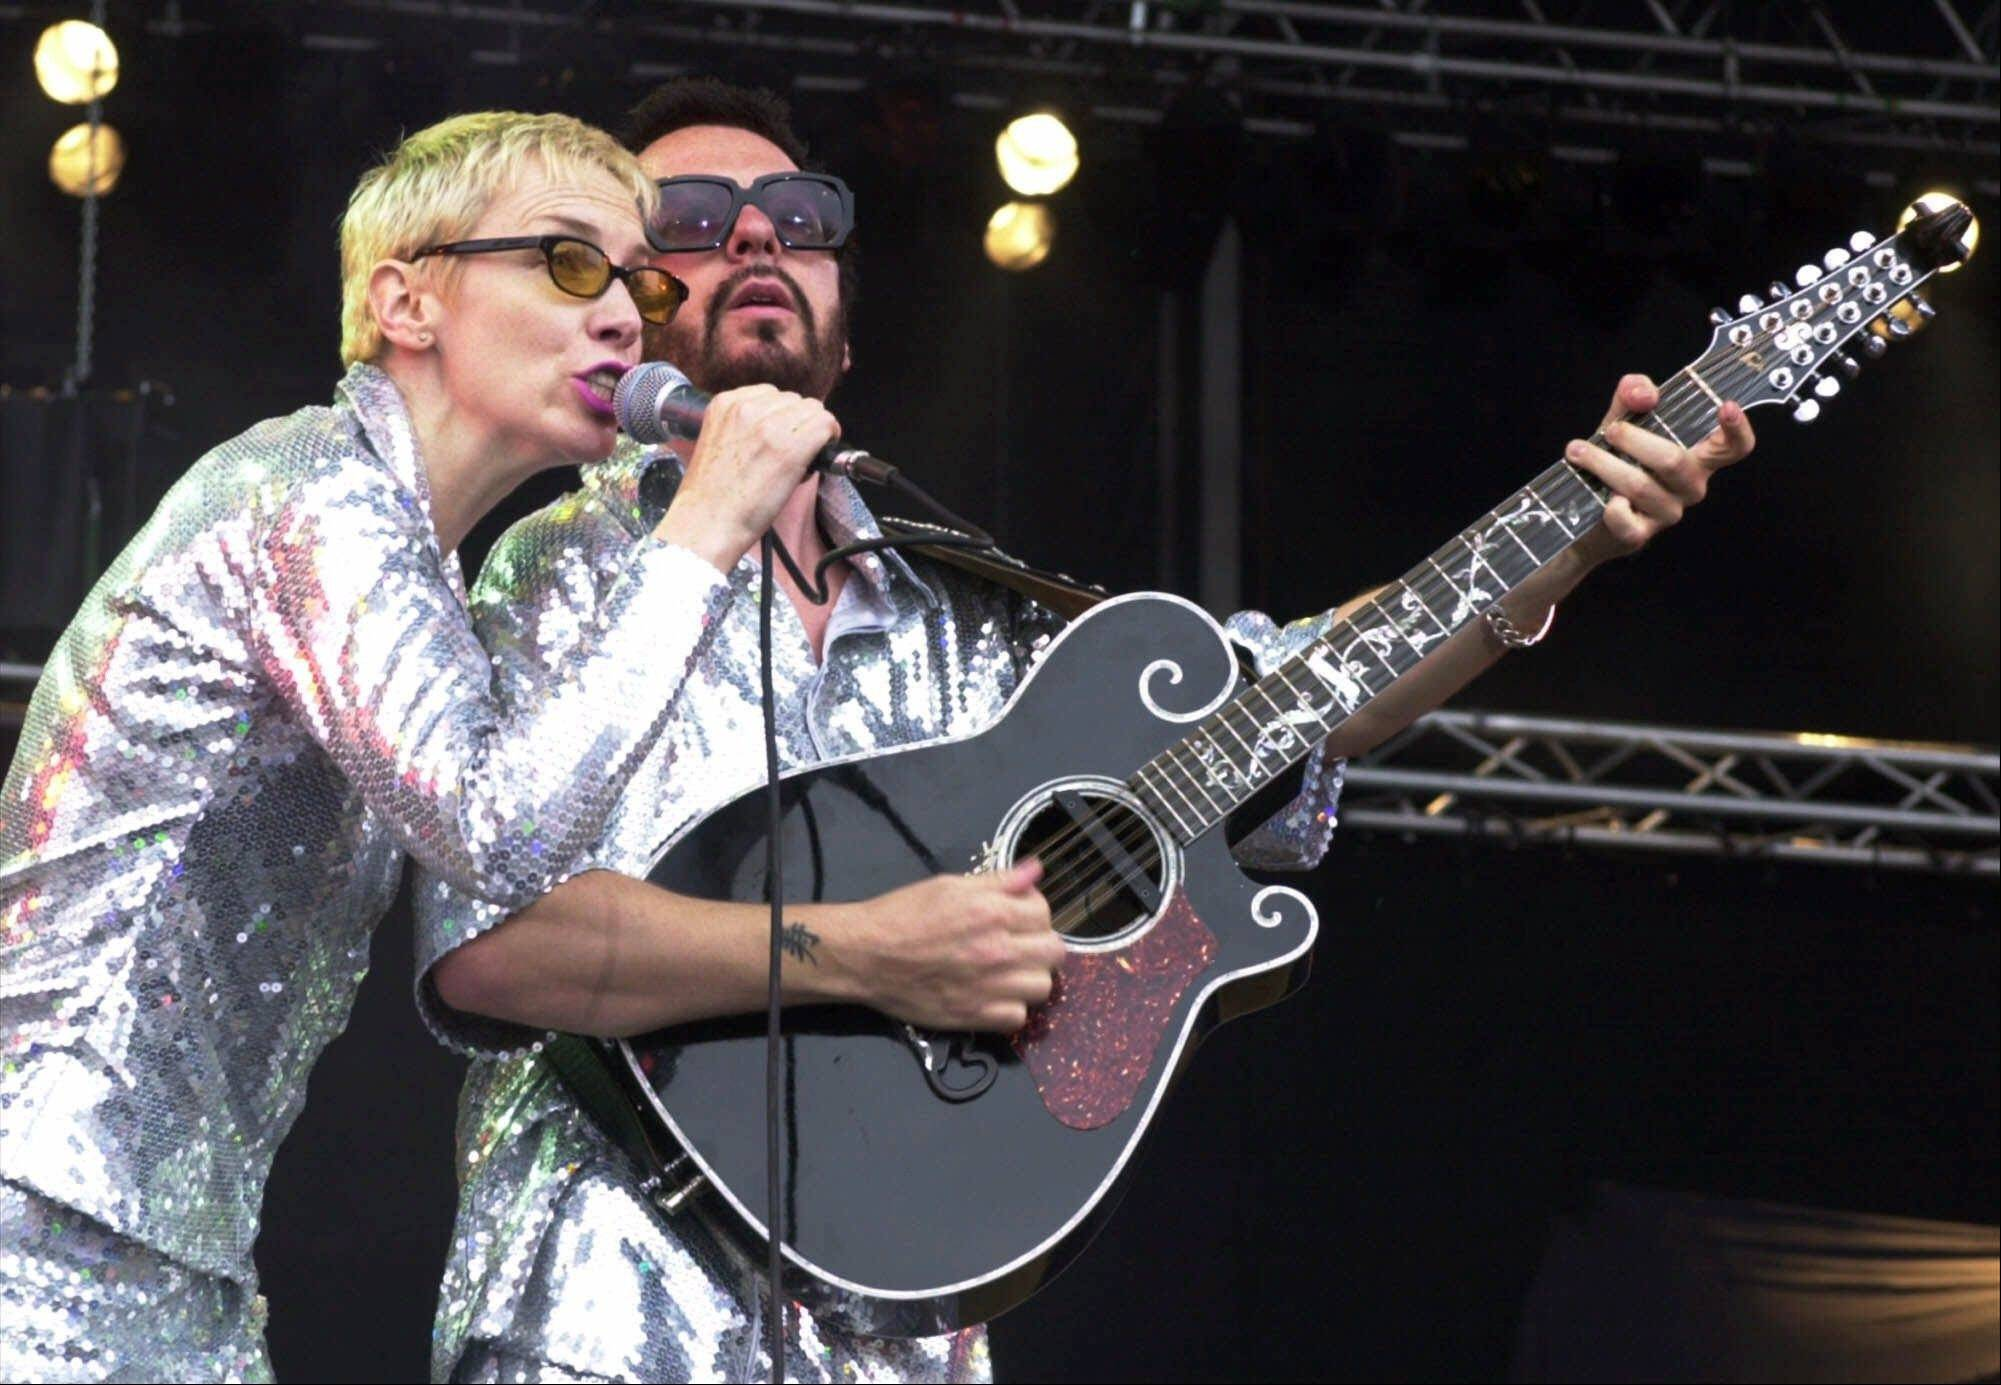 The Eurythmics � Annie Lennox and Dave Stewart � performed onstage in 2000 at the Rock at the Ring music festival in Nuerburg, Germany. The band is reuniting to pay tribute to the Beatles for �The Night That Changed America: A Grammy Salute To The Beatles.� The event will tape at the Los Angeles Convention Center on Jan. 27, a day after the Grammy Awards.